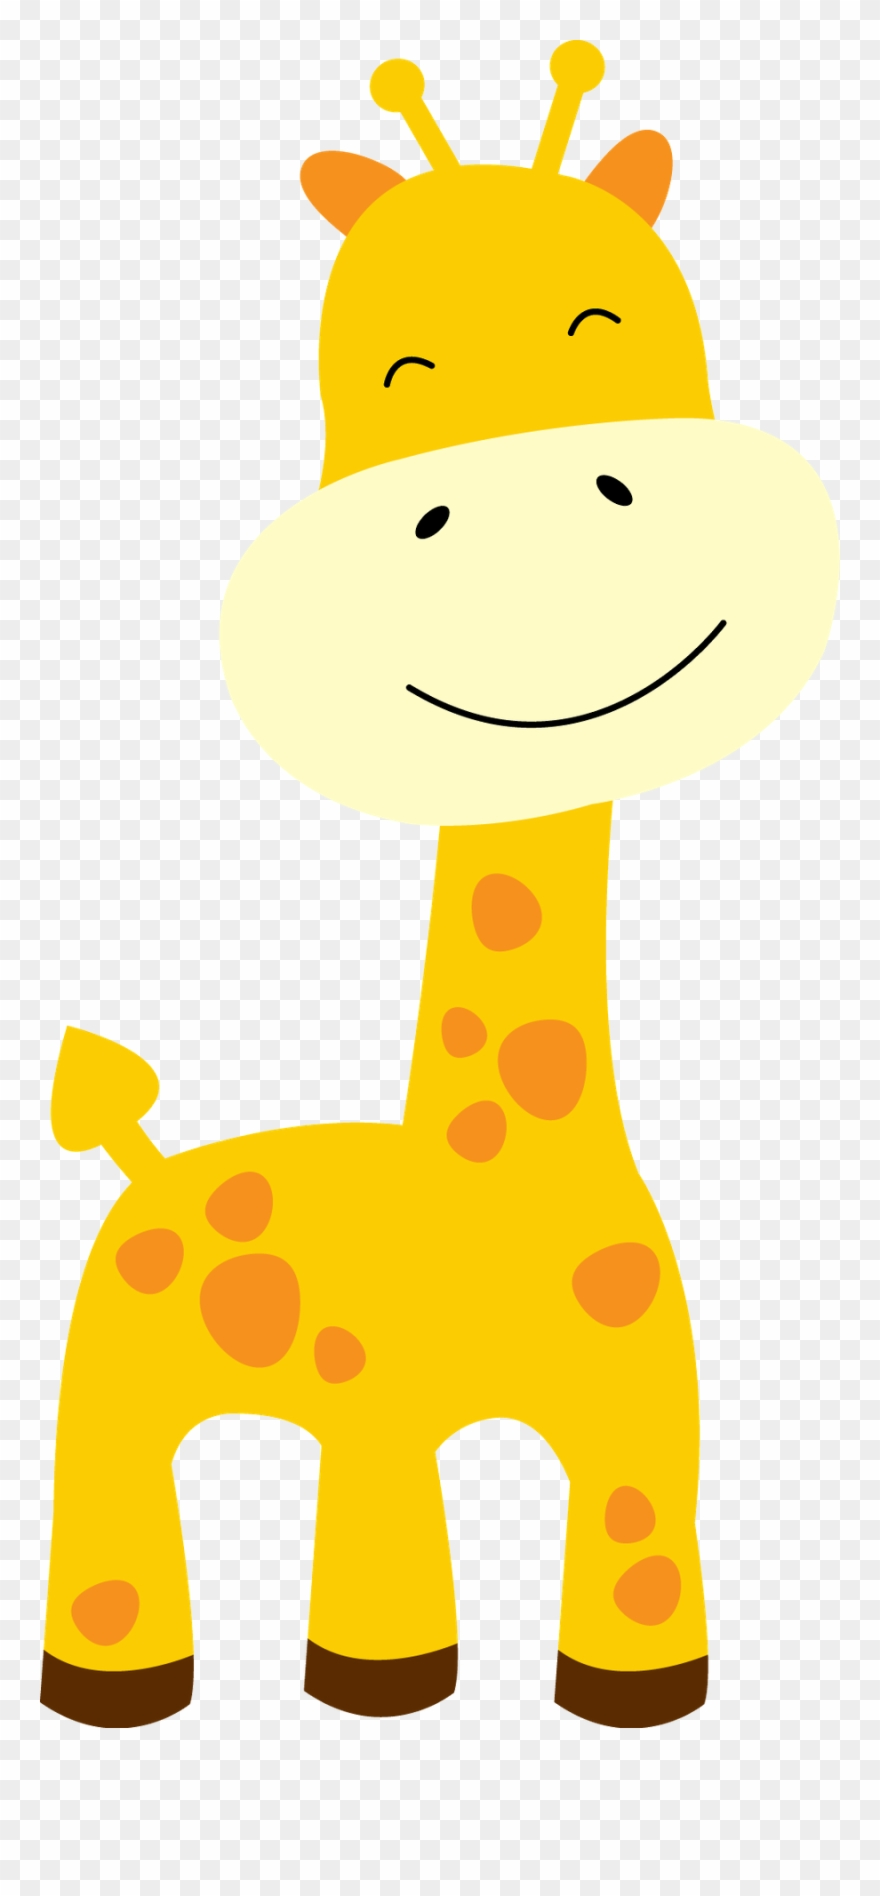 Cute giraffe clipart clipart images gallery for free.